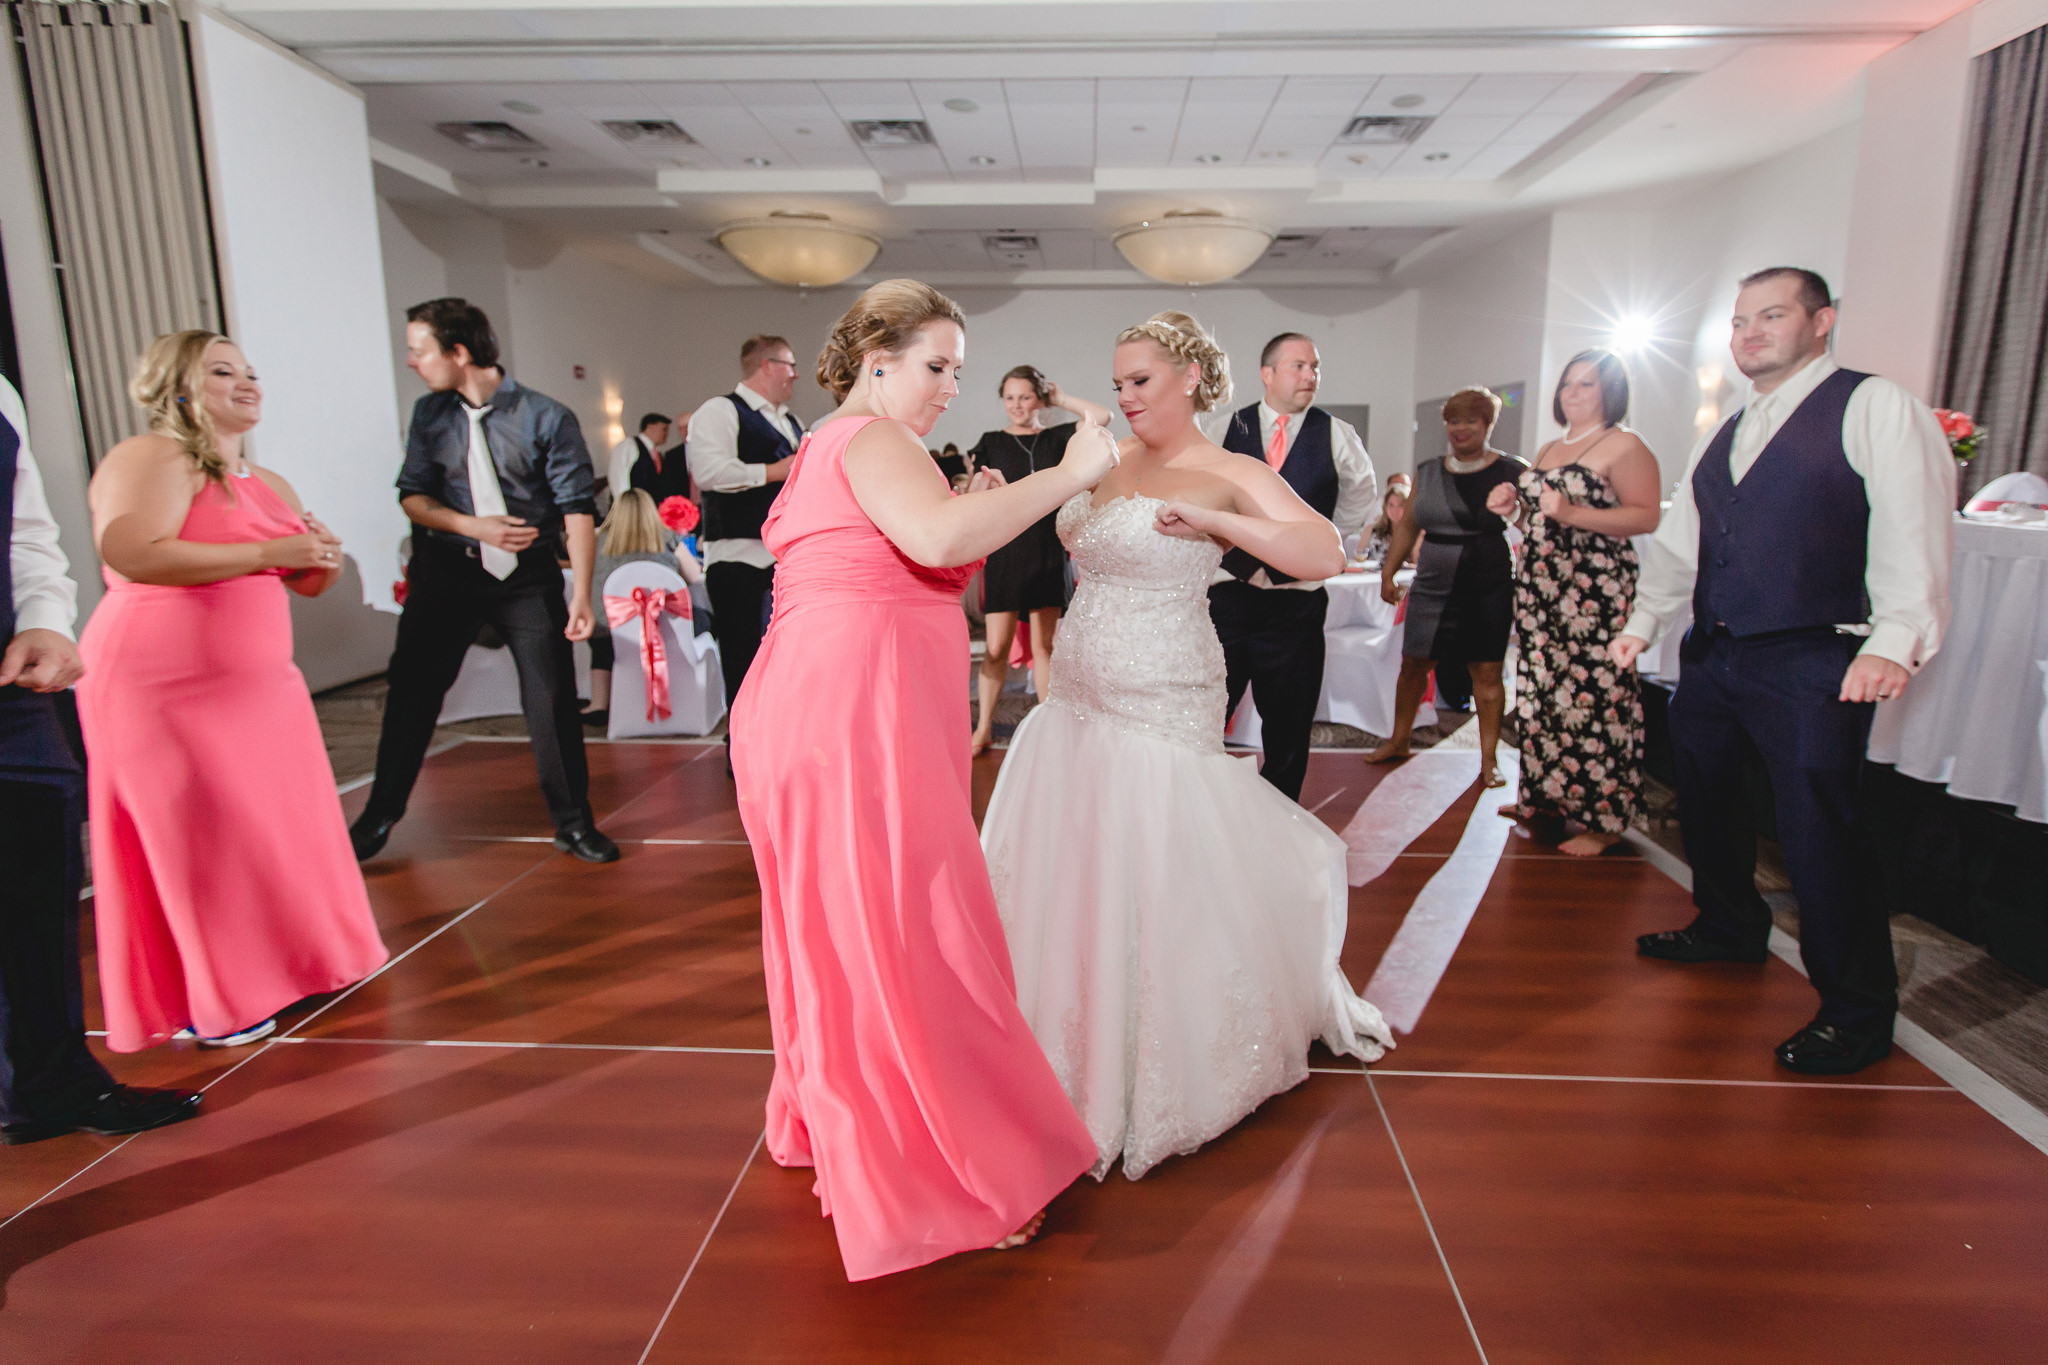 Bride dances with her bridesmaid at the Pittsburgh Airport Marriott